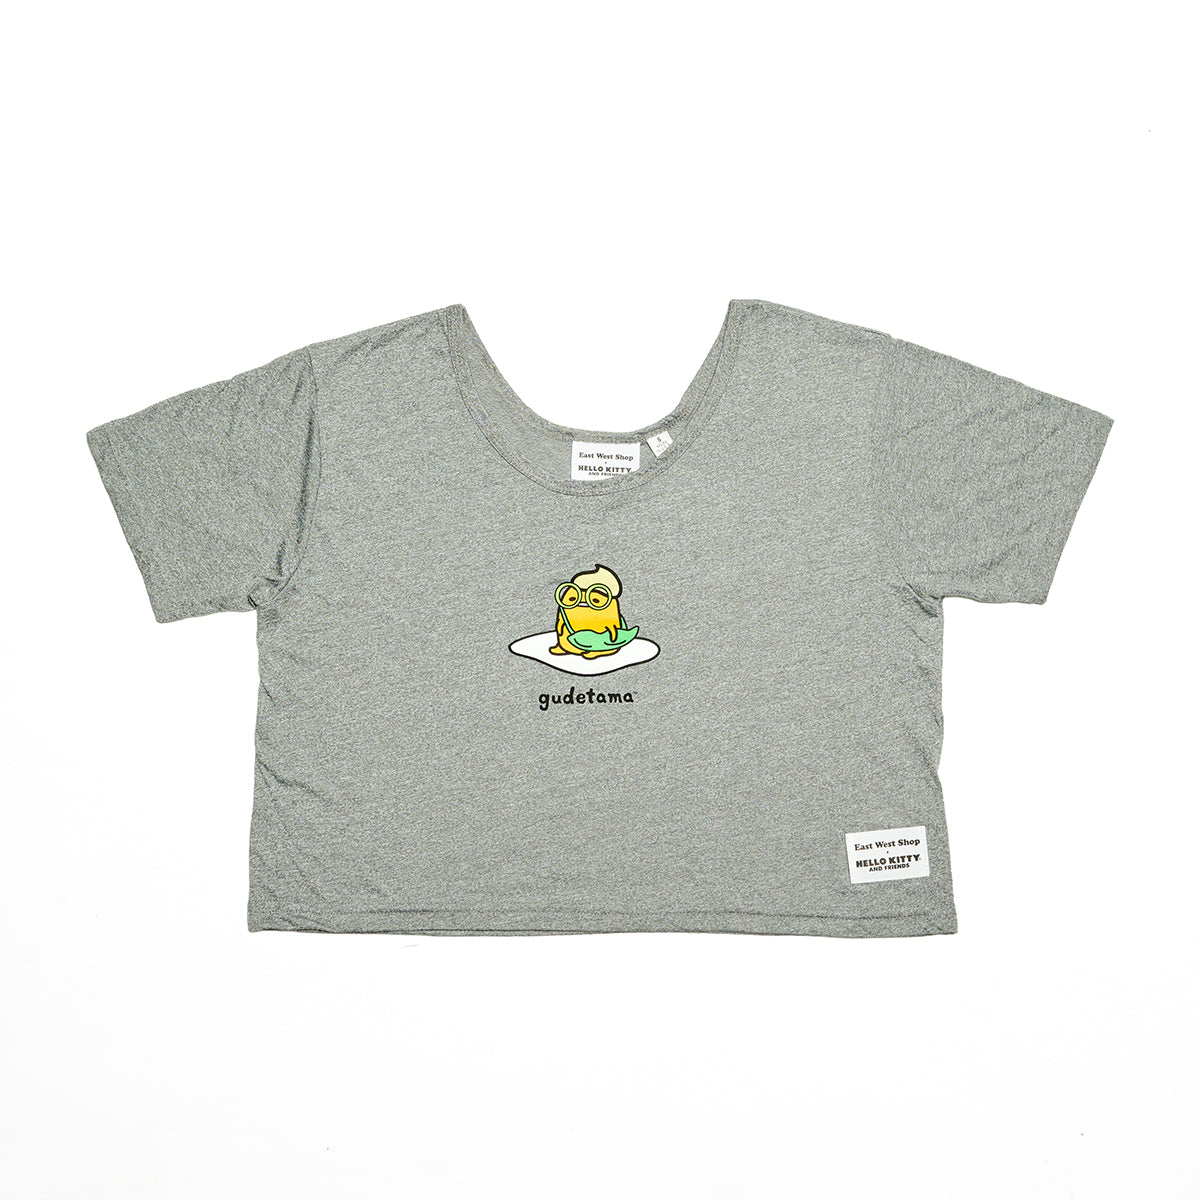 East West Shop x Gudetama Crop Tee